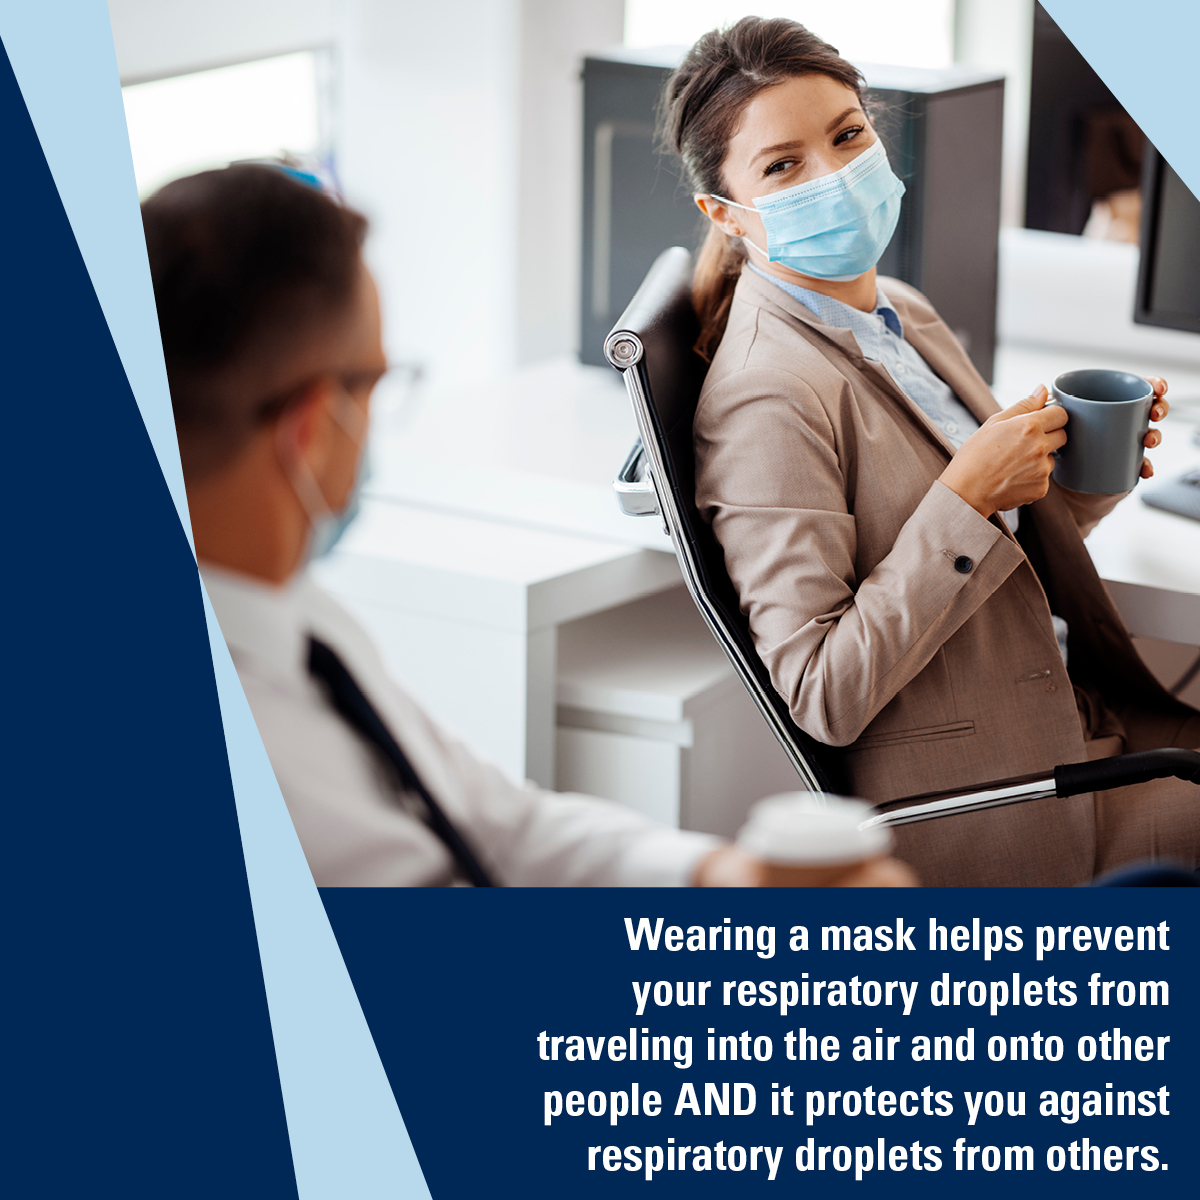 Woman and man seated at neighboring desks wear masks while talking. Caption: Wearing a mask helps prevent your respiratory droplets from traveling into the air and onto other people AND it protects you against respiratory droplets from others.